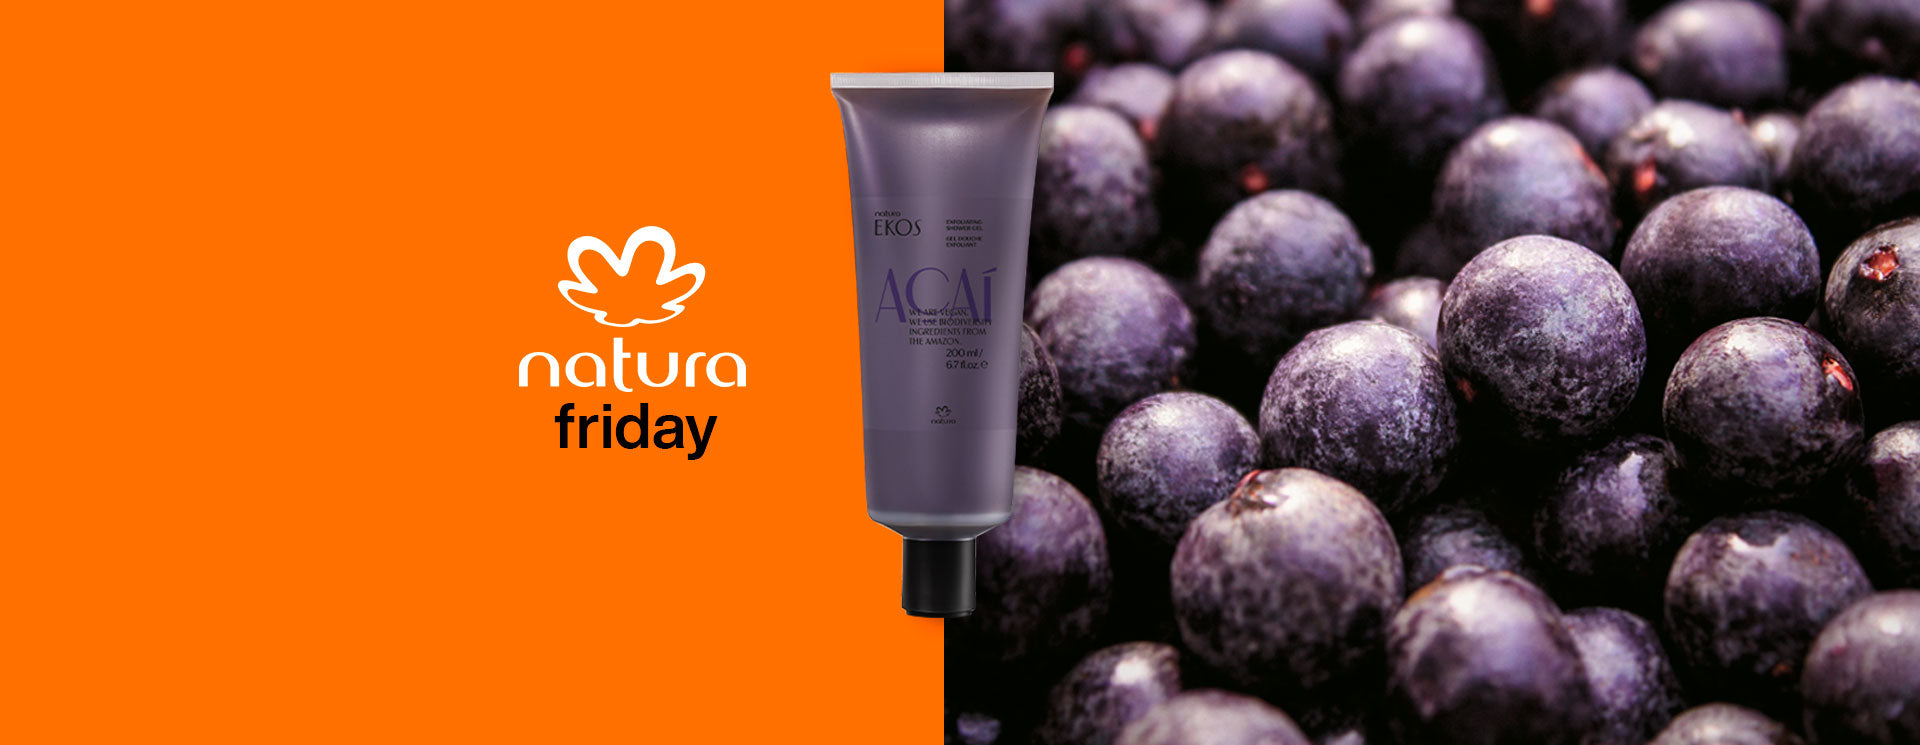 Natura Friday: Your purchase matters to someone's world